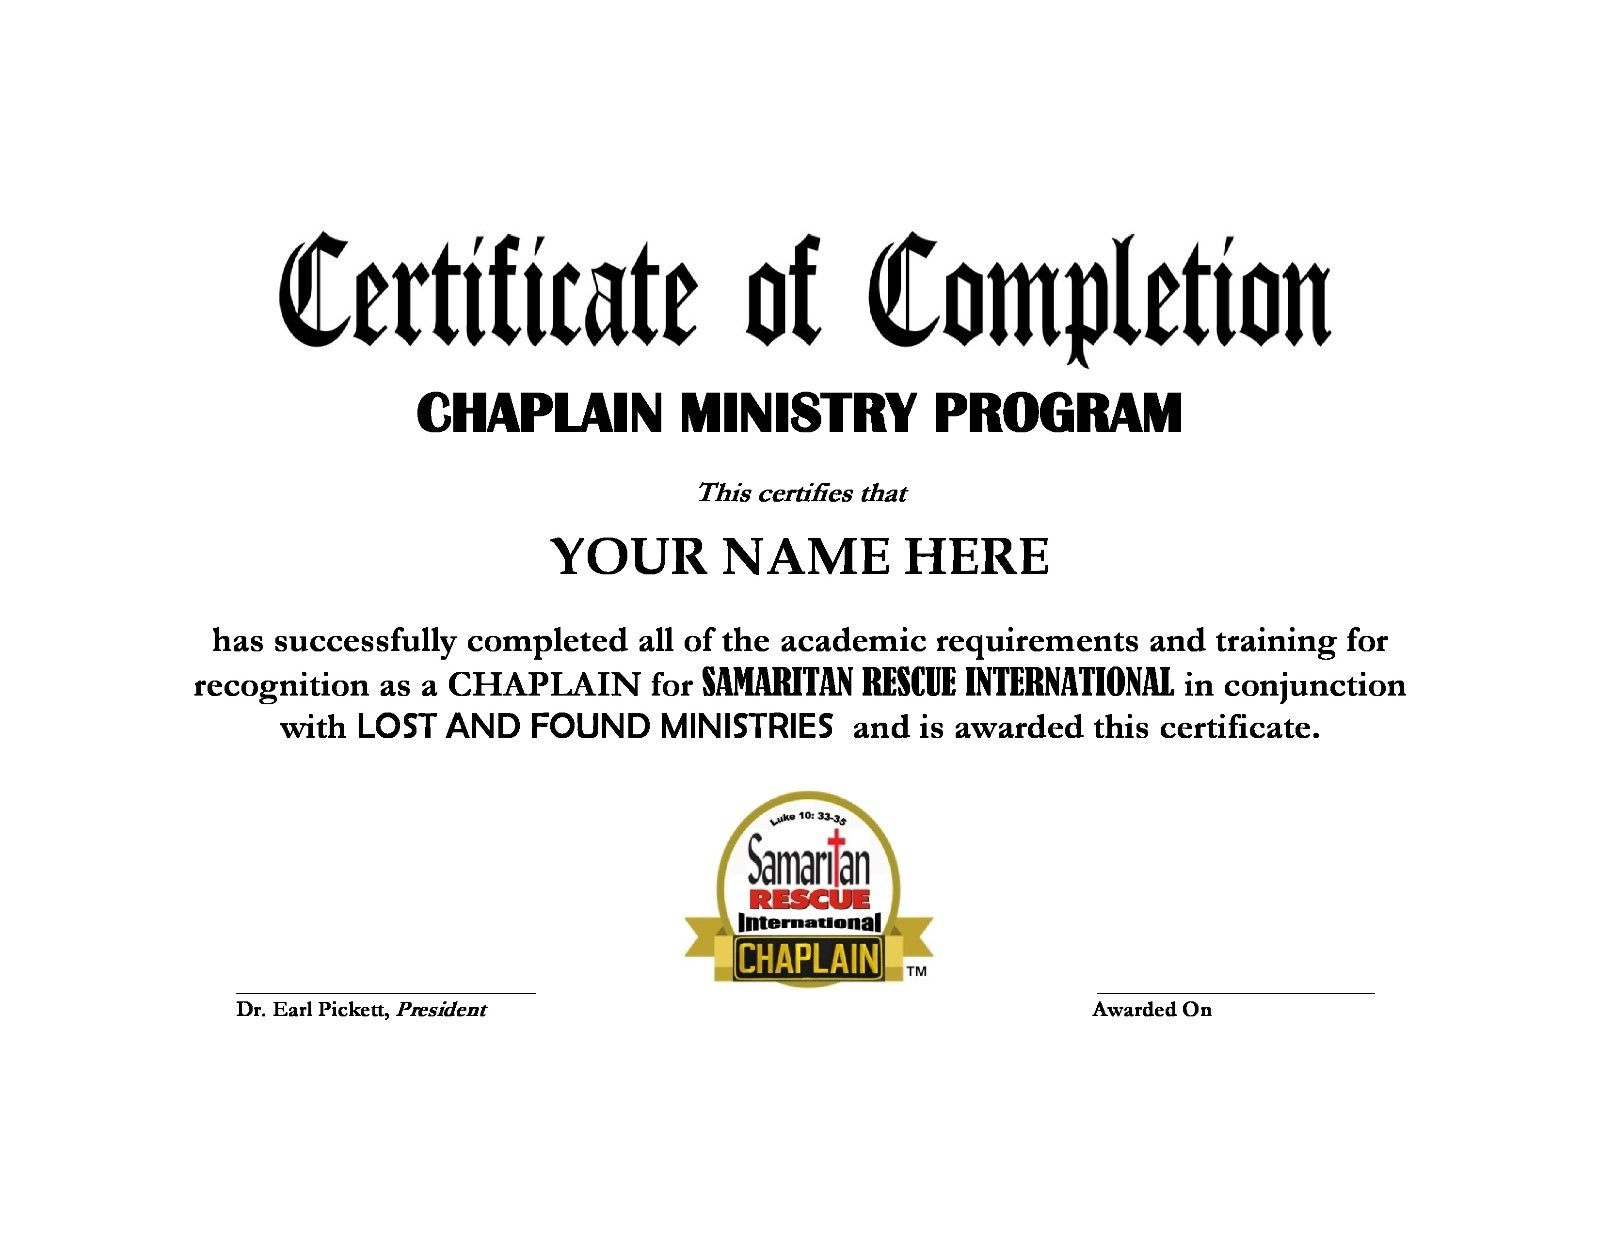 Our Home Study Programs Samaritan Rescue International Chaplains